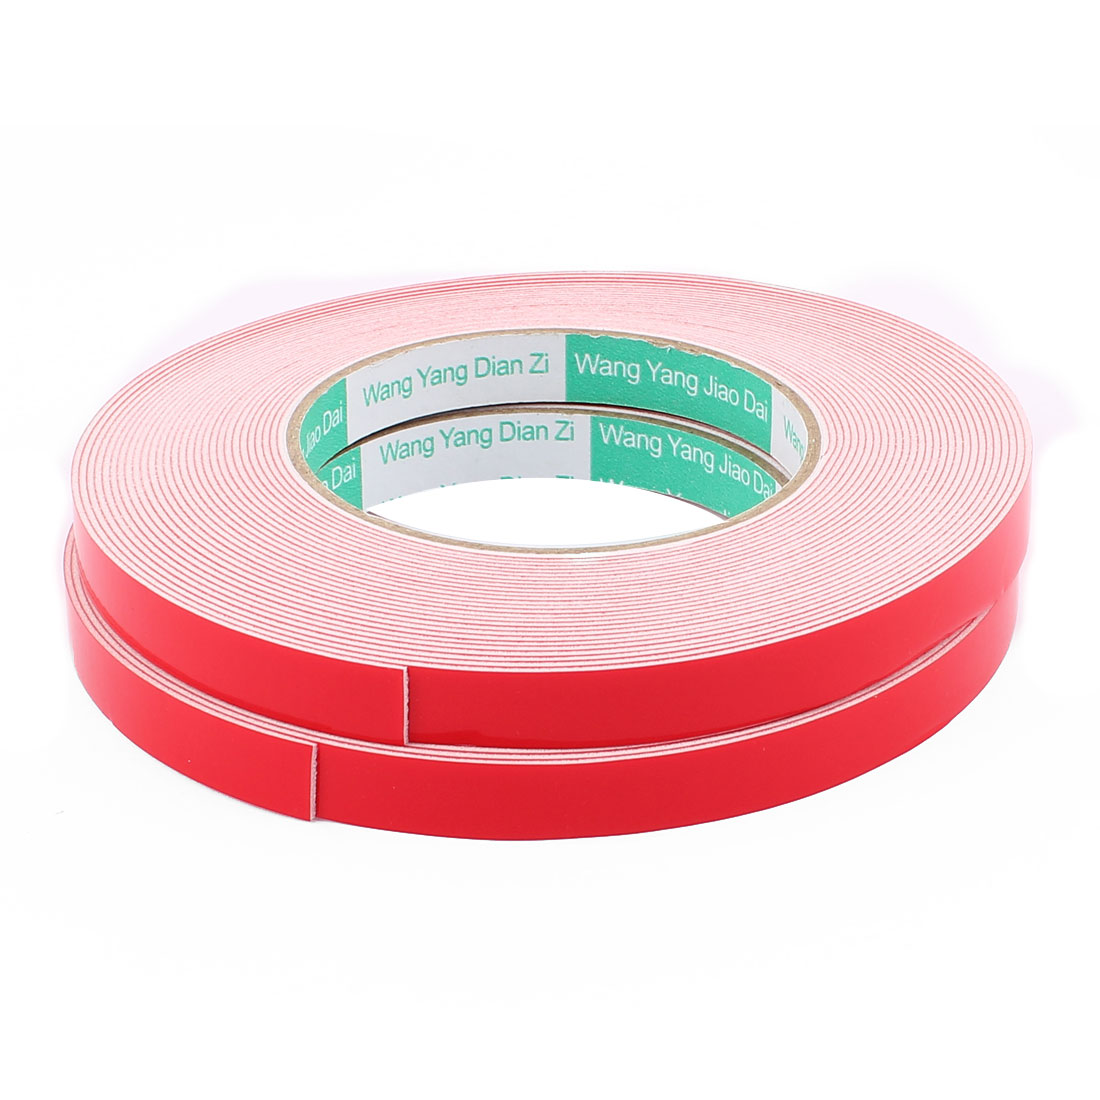 2PCS 12MM Width 10M Long 1MM Thick White Dual Sided Waterproof Sponge Tape for Car